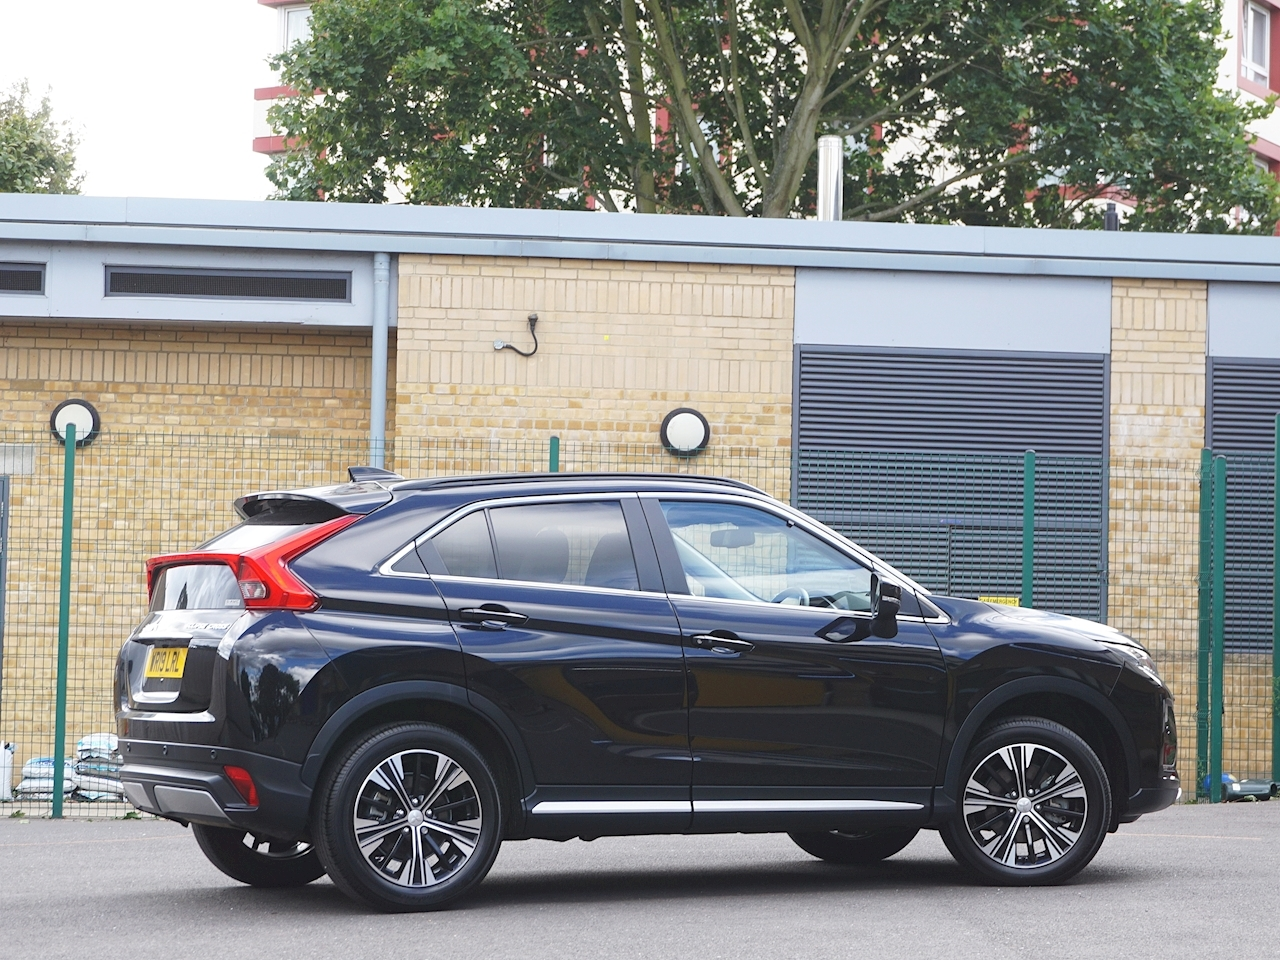 Eclipse Cross 4 SUV 1.5 CVT Petrol